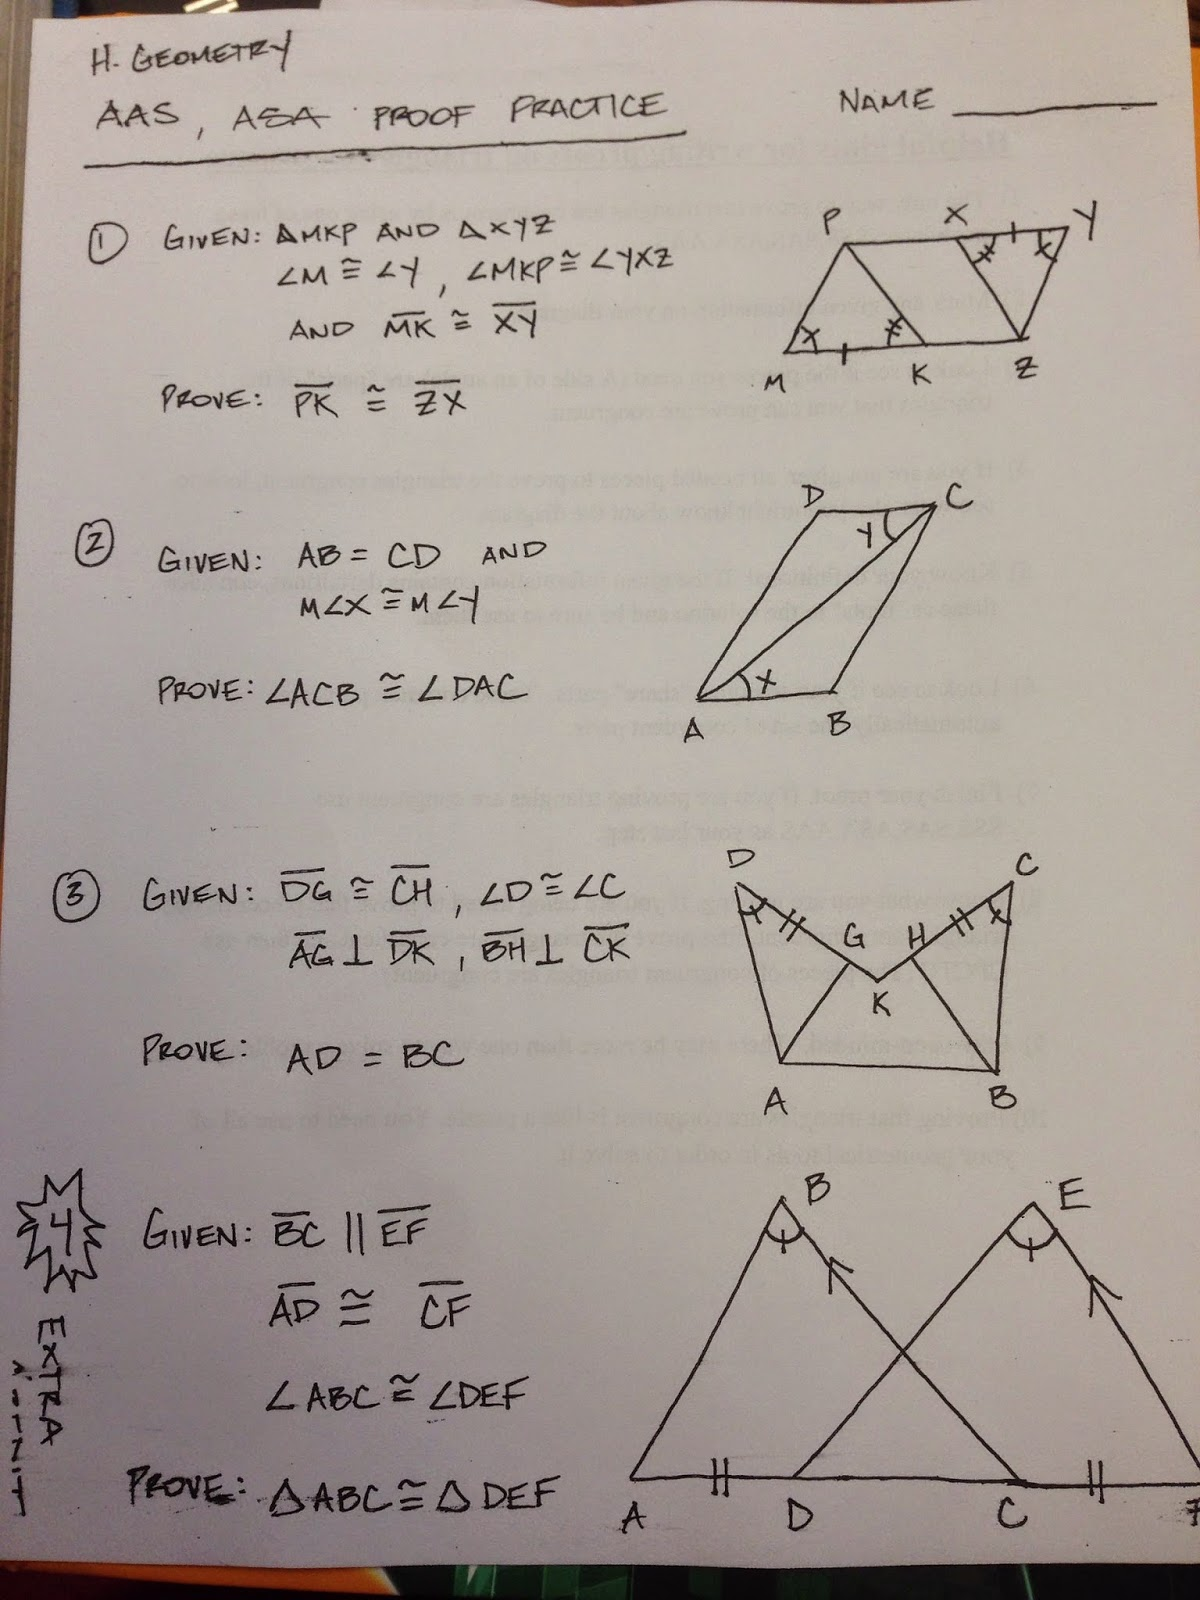 Classifying Triangles Worksheet Answer Key